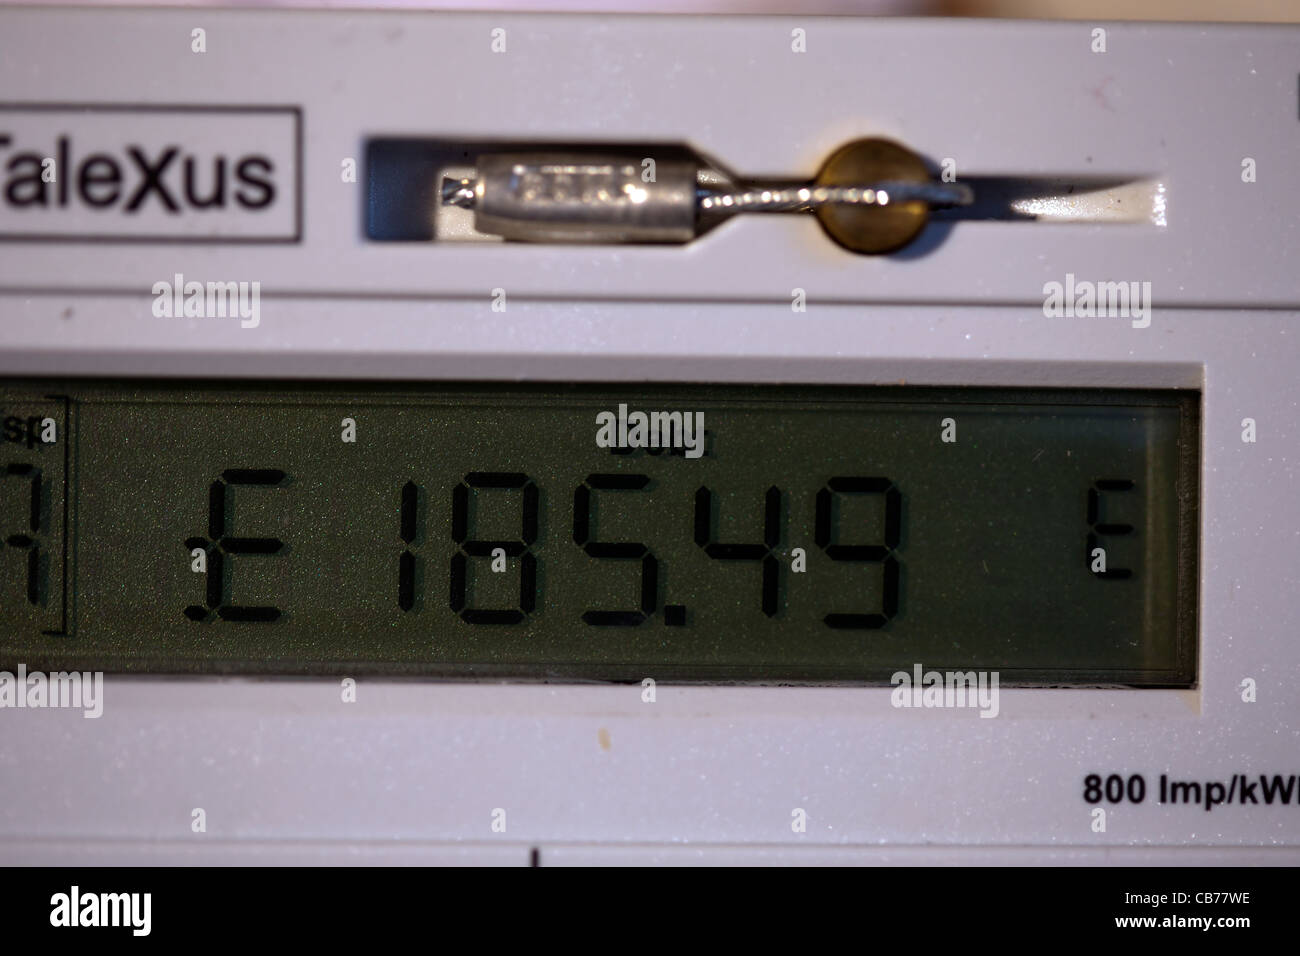 Debt Display _Electrical Supply and Distribution meter displaying an amount in debt - Stock Image